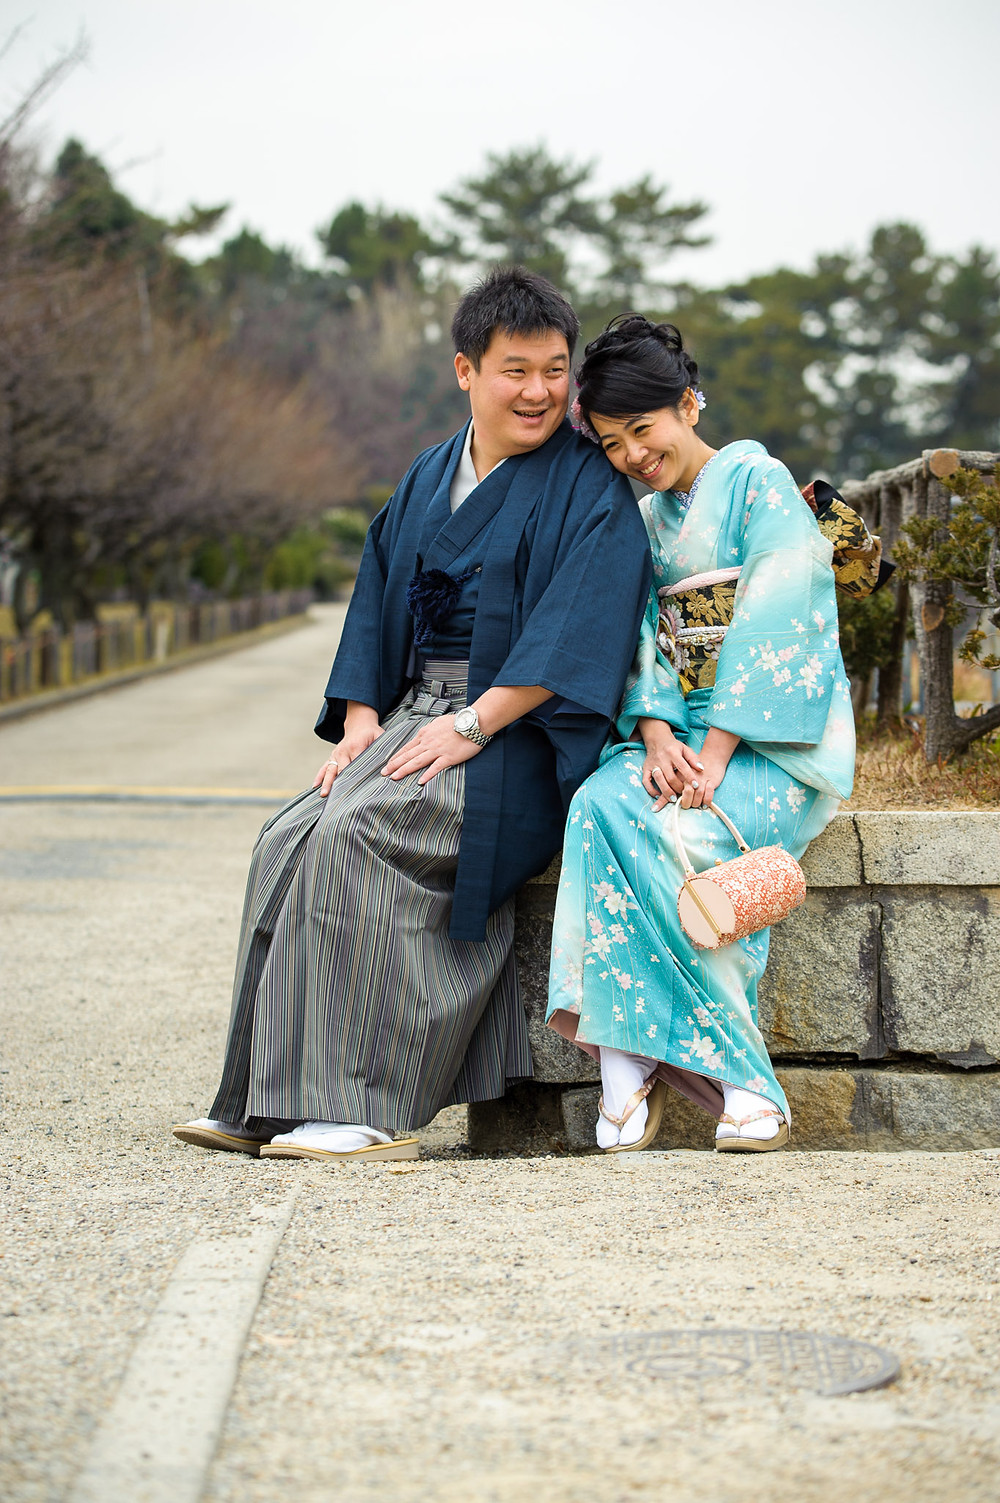 Carina and Very smile and laugh as they sit together in front of the castle in their kimonos